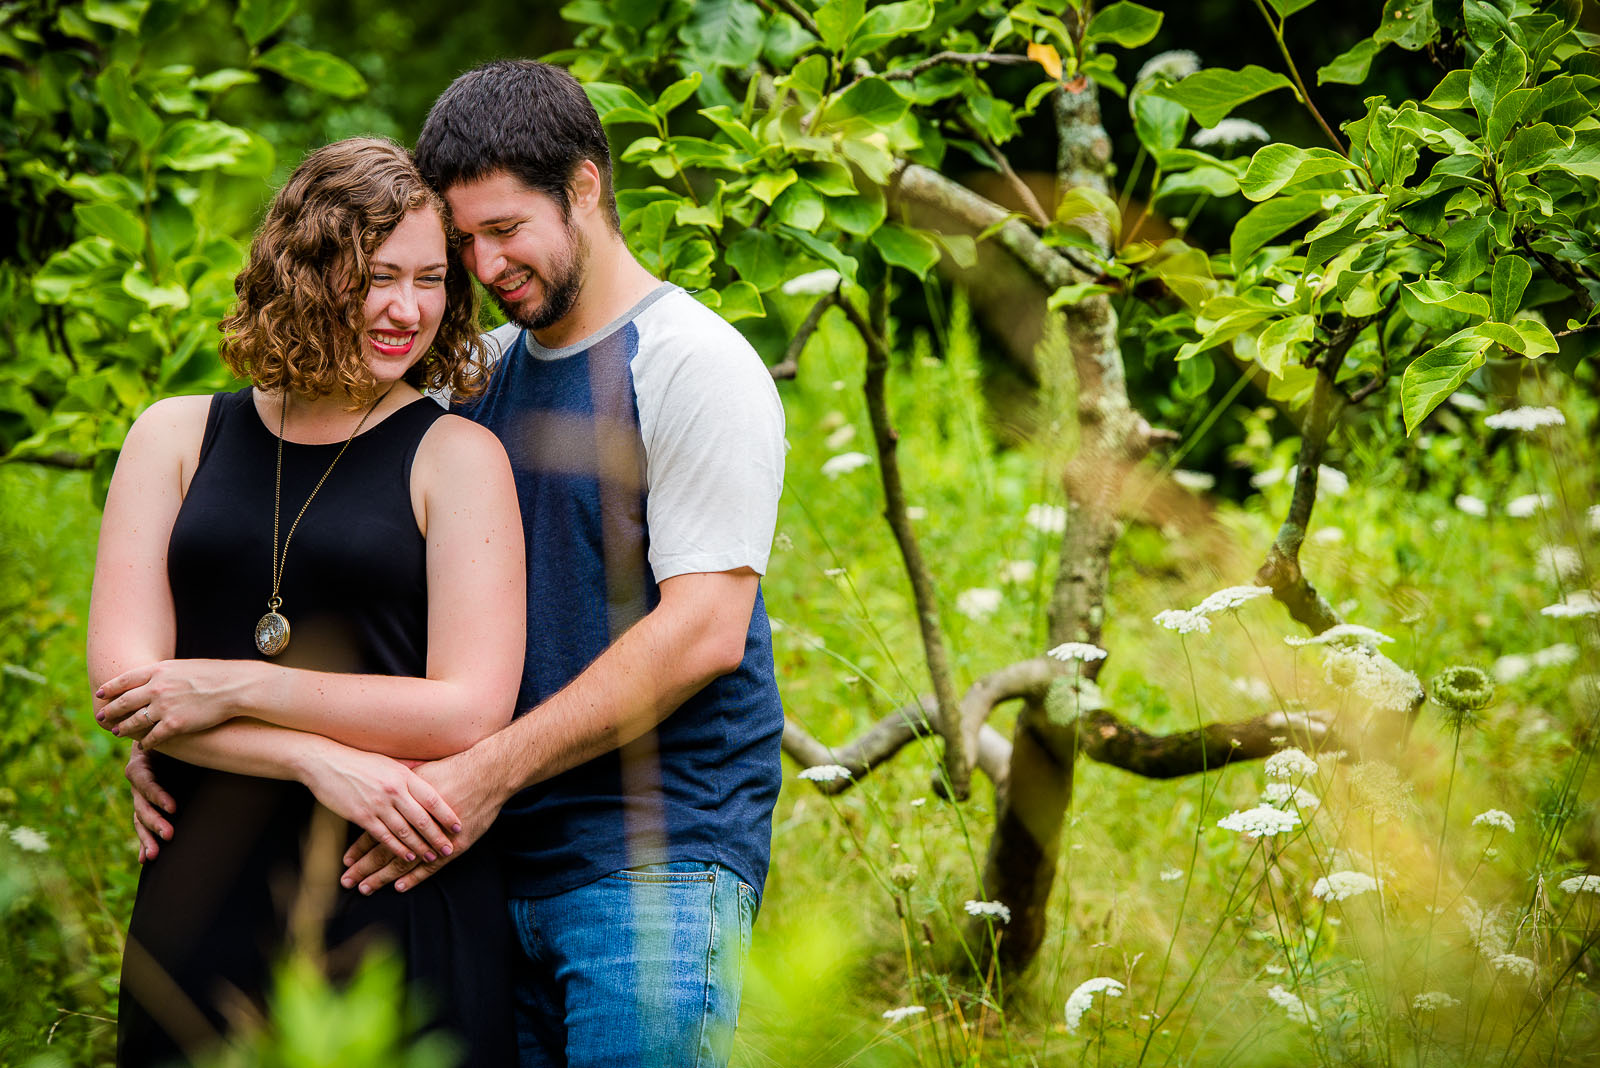 Eric_and_Christy_Photography_Blog_Engagement_Andrea_Clint-27